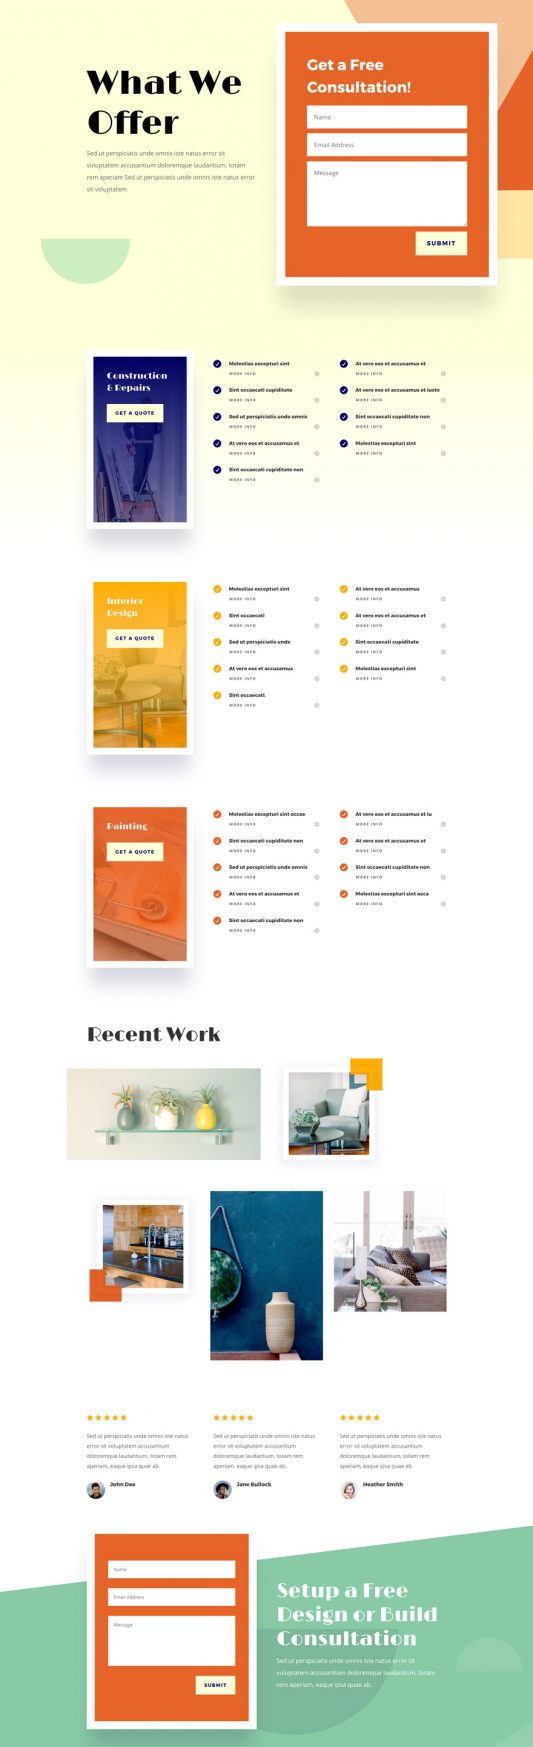 Home Improvement Web Design 6